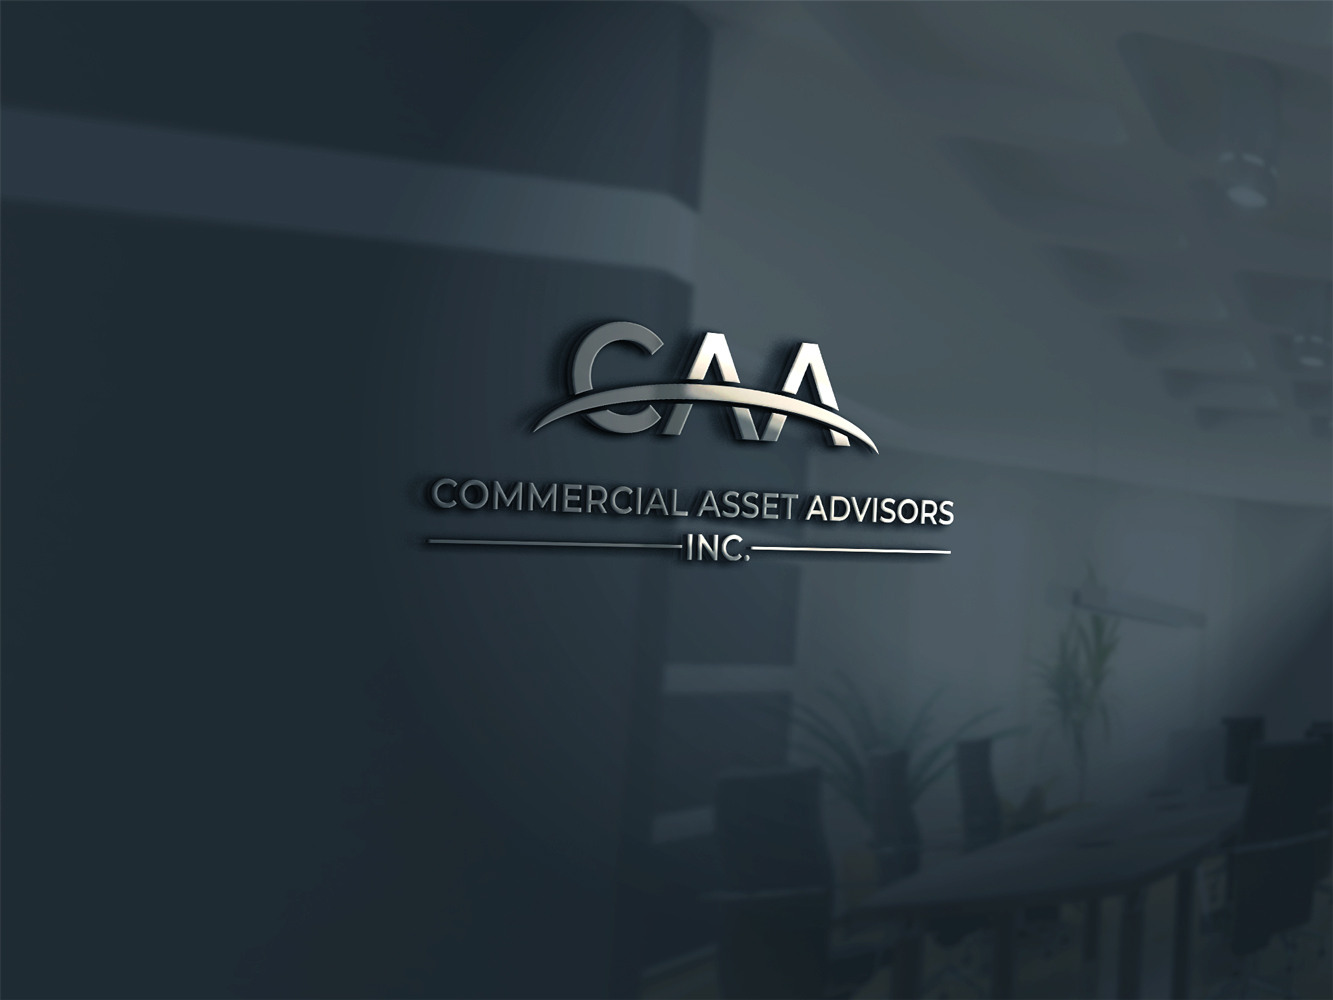 Winning Entry #98 for Logo Design contest - Create a logo for Commercial Assest Advisors, Inc. - original